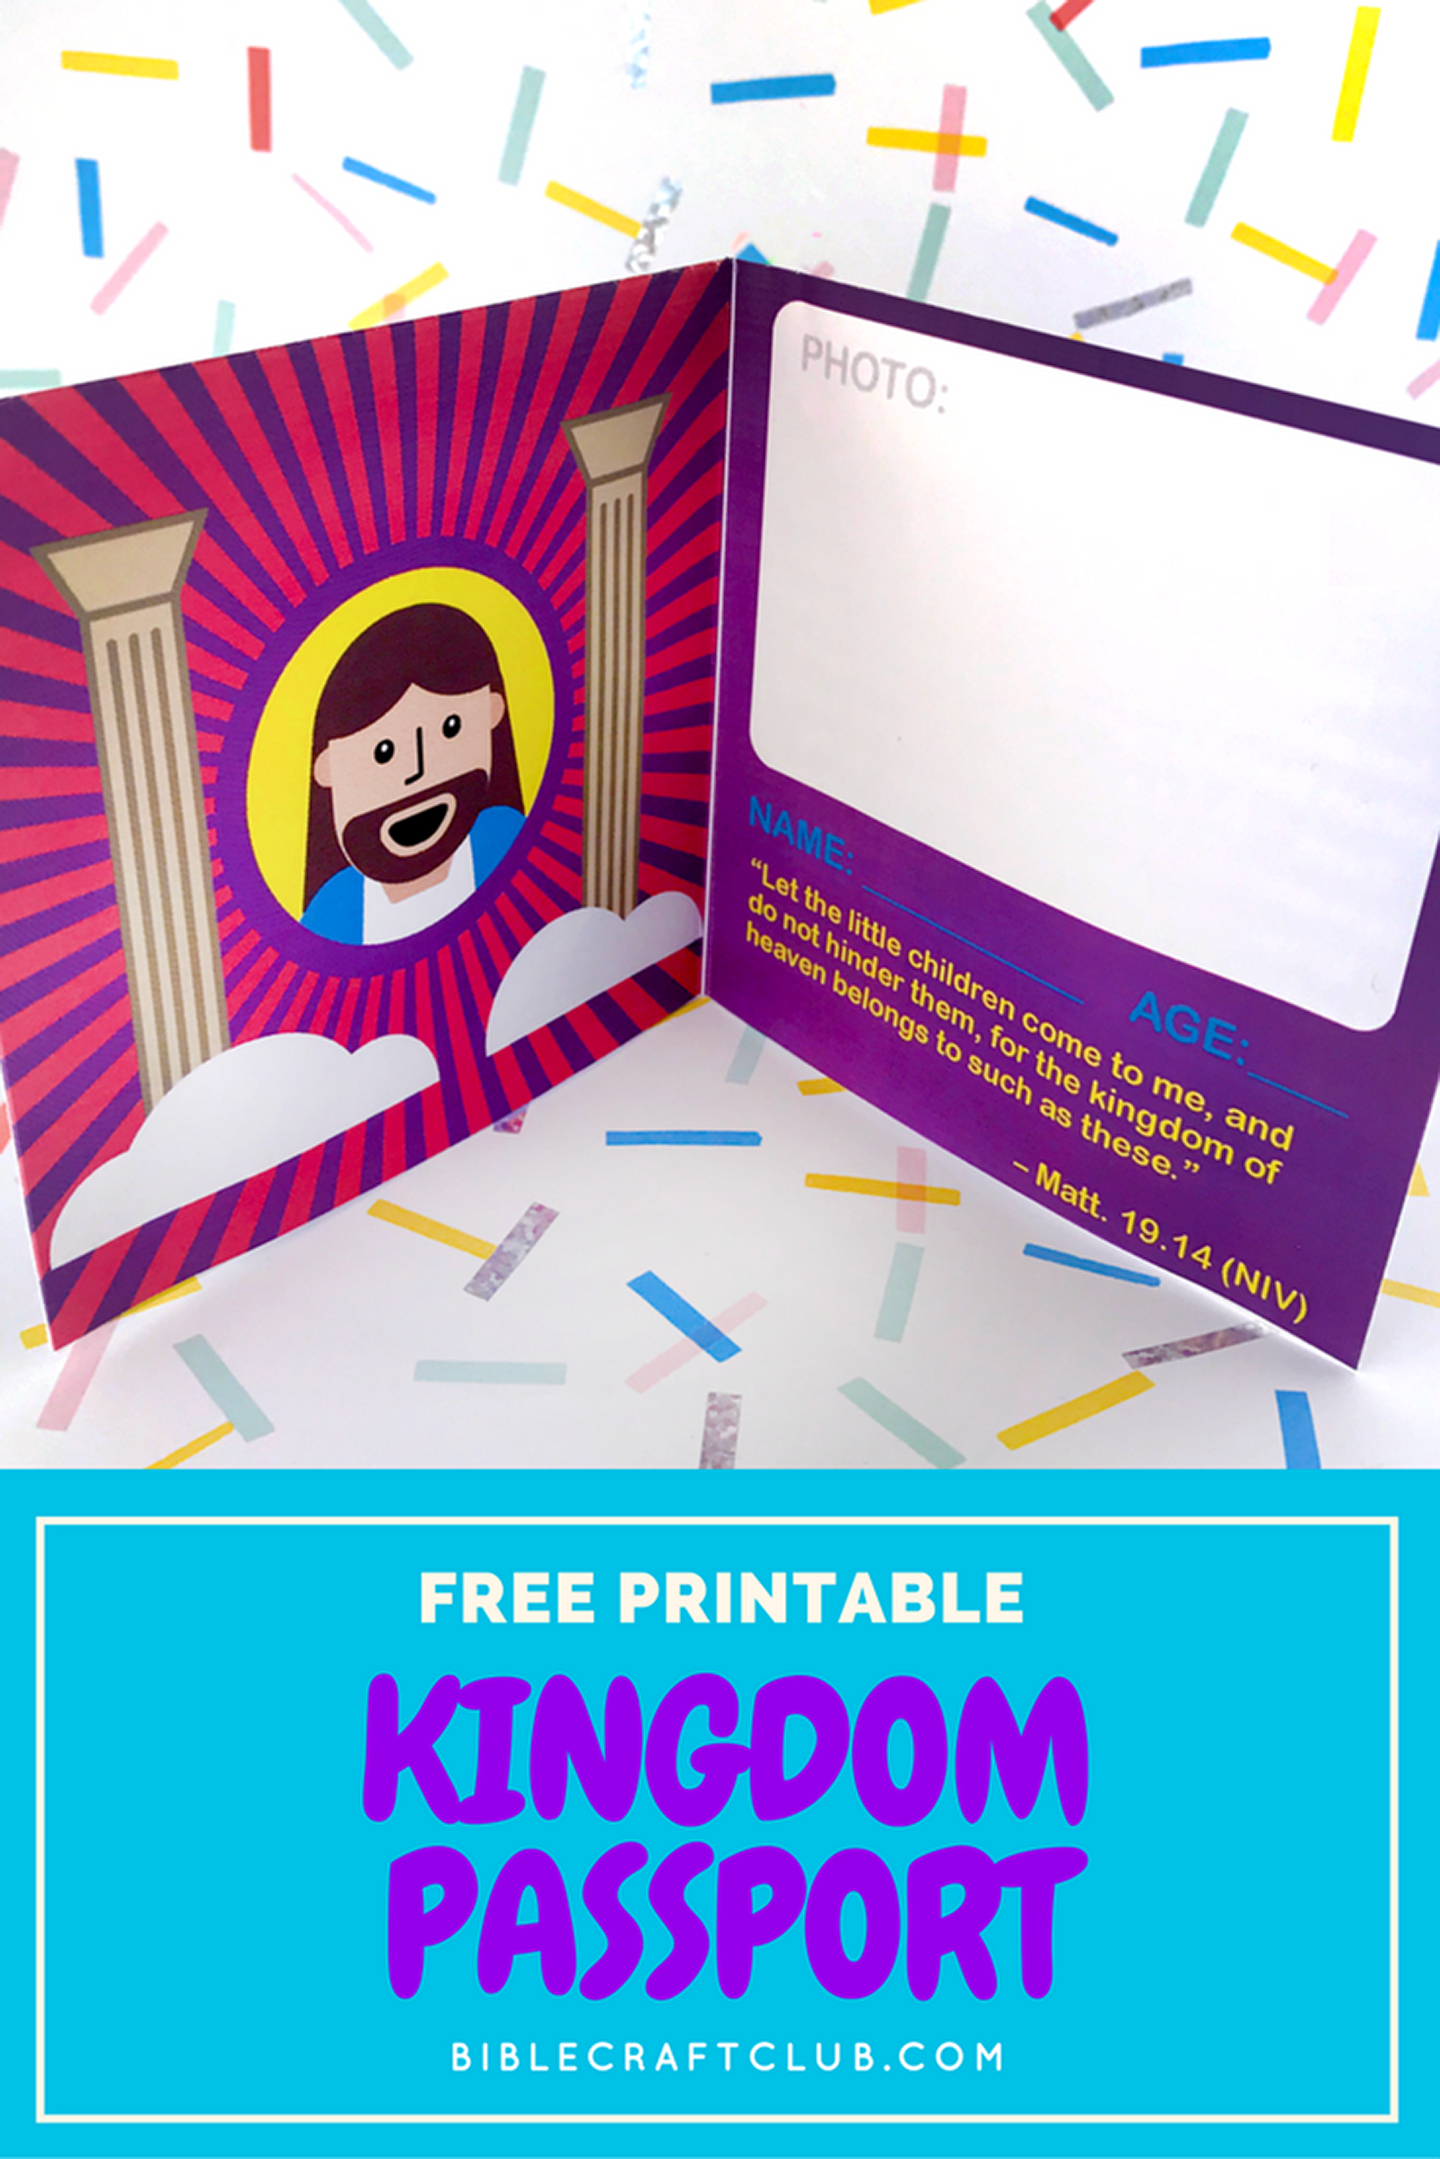 Kingdom Passport Craft | Biblecraftclub | Bible Crafts - Free Printable Bible Crafts